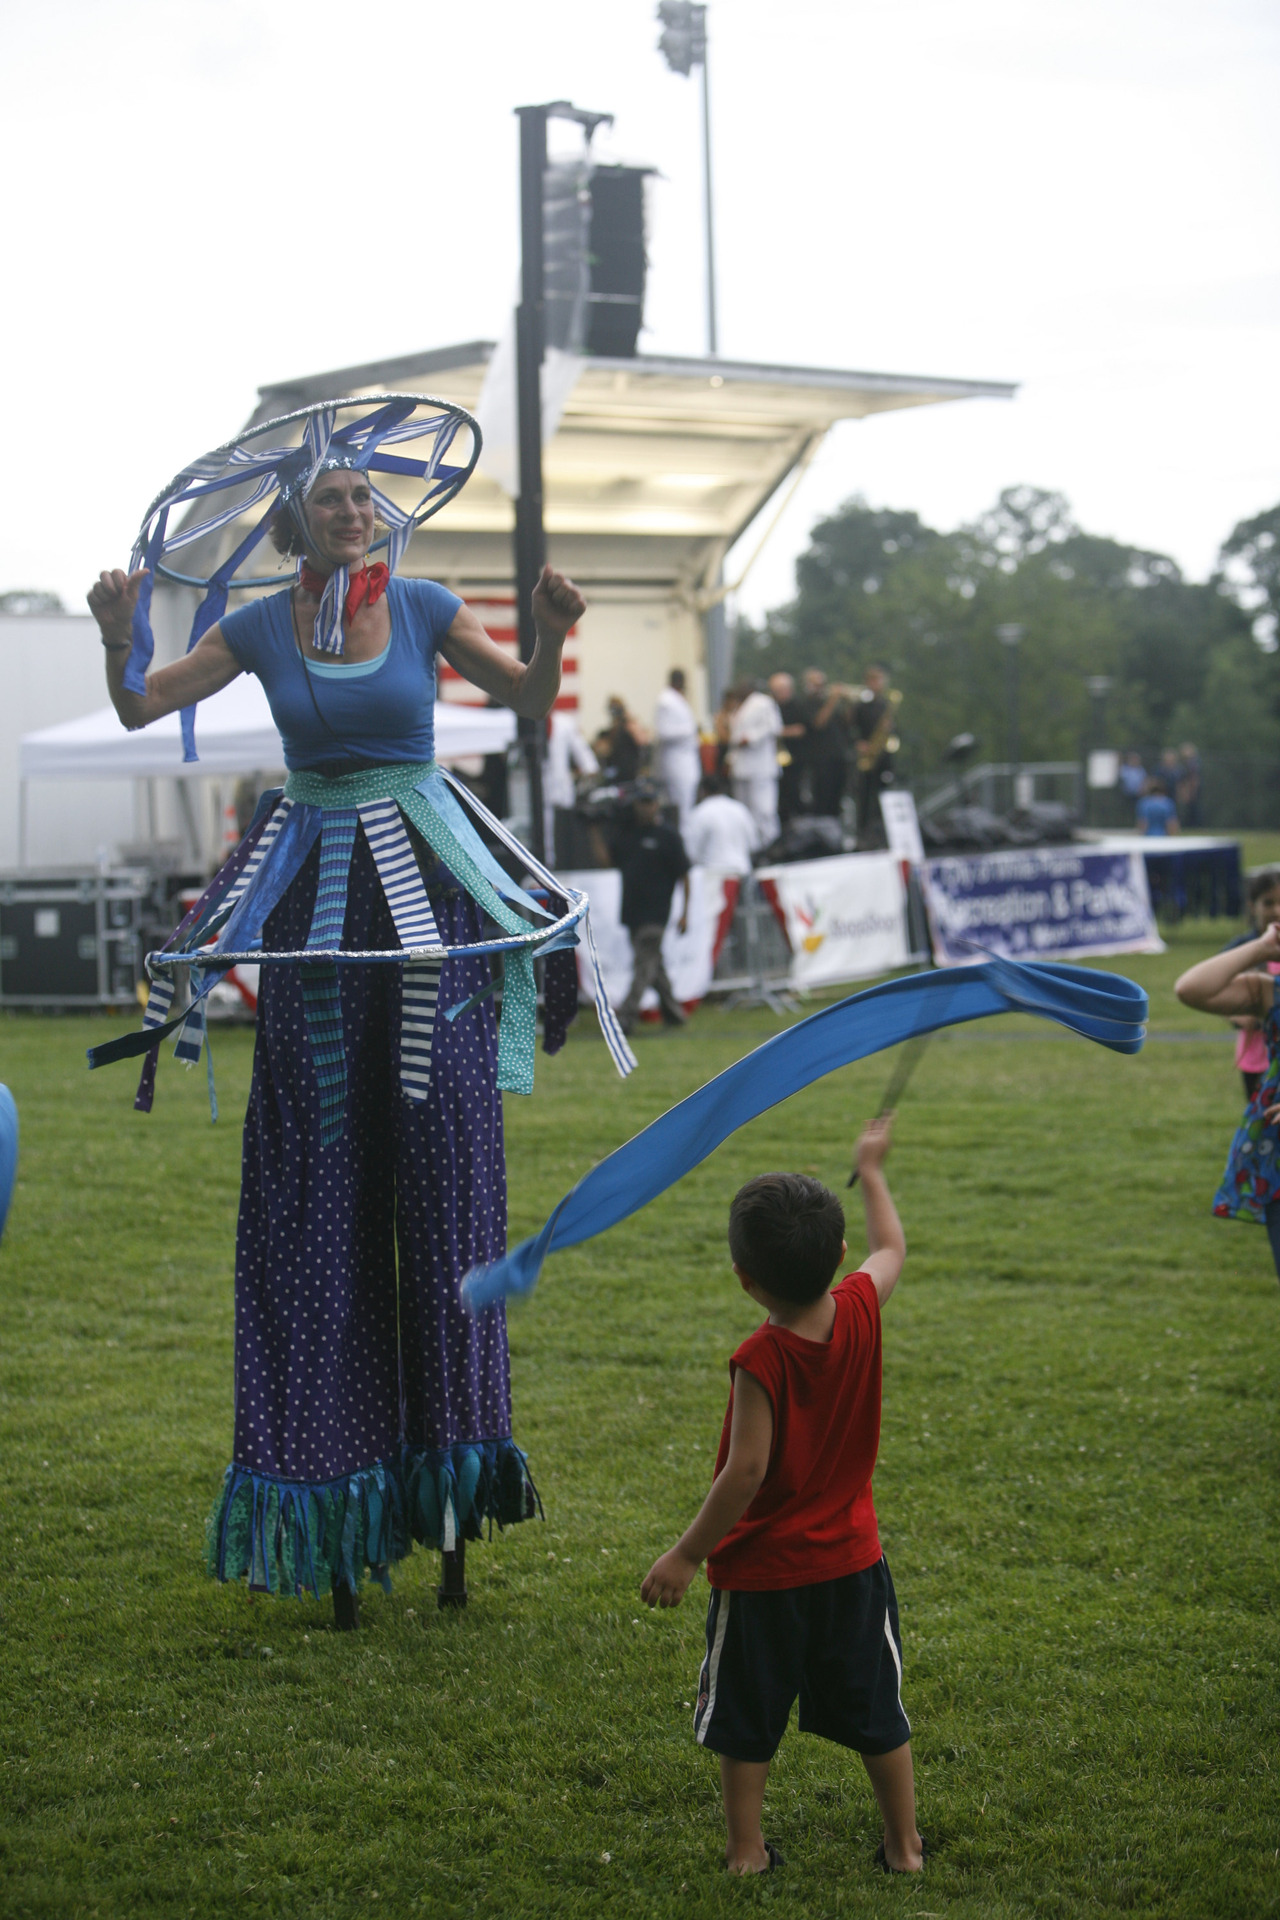 Daniel Minchala of Elmsford twirls a ribbon with performer Therese Schorn before the fireworks show at White Plains High School July 2, 2013. (Dave Gershgorn/ The Journal News)